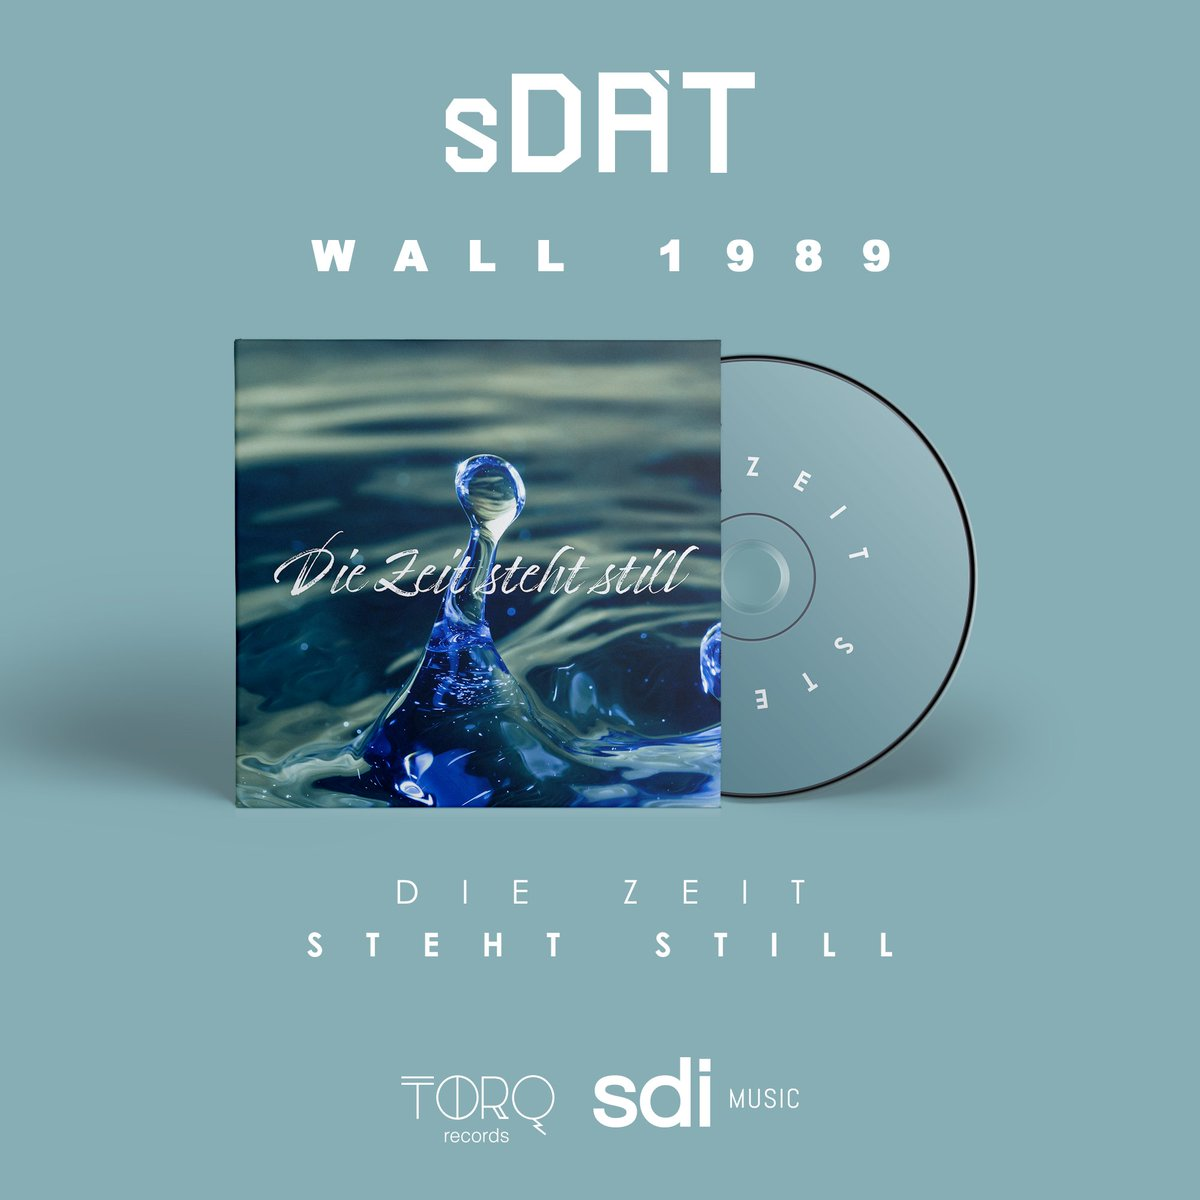 Wall 1989 by Sdat, is on the Die Zeit Steht Still Compilation and the genre of the track is techno.   #techno #berlin #deutschland #berlinwall #berlinmusic #technomusic #night #life #recordlabel #subculture #track #newtrack #wave #street #electro #electroclash #eurodancepic.twitter.com/iba9CsQJyz